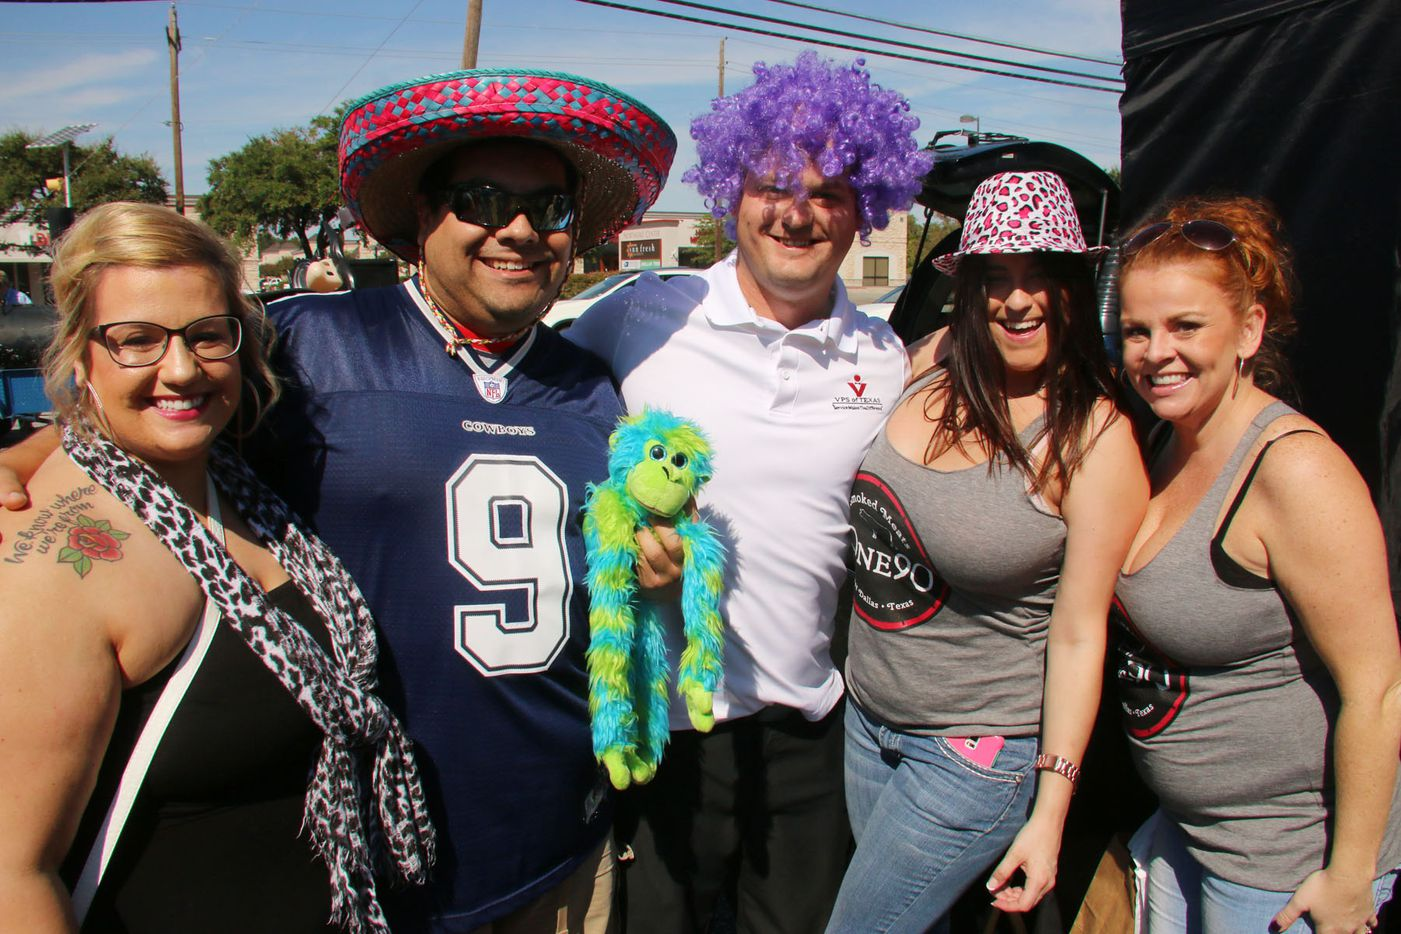 Attendees enjoyed the photo booth at One90 Smoked Meats grand opening in East Dallas on October 4, 2015.